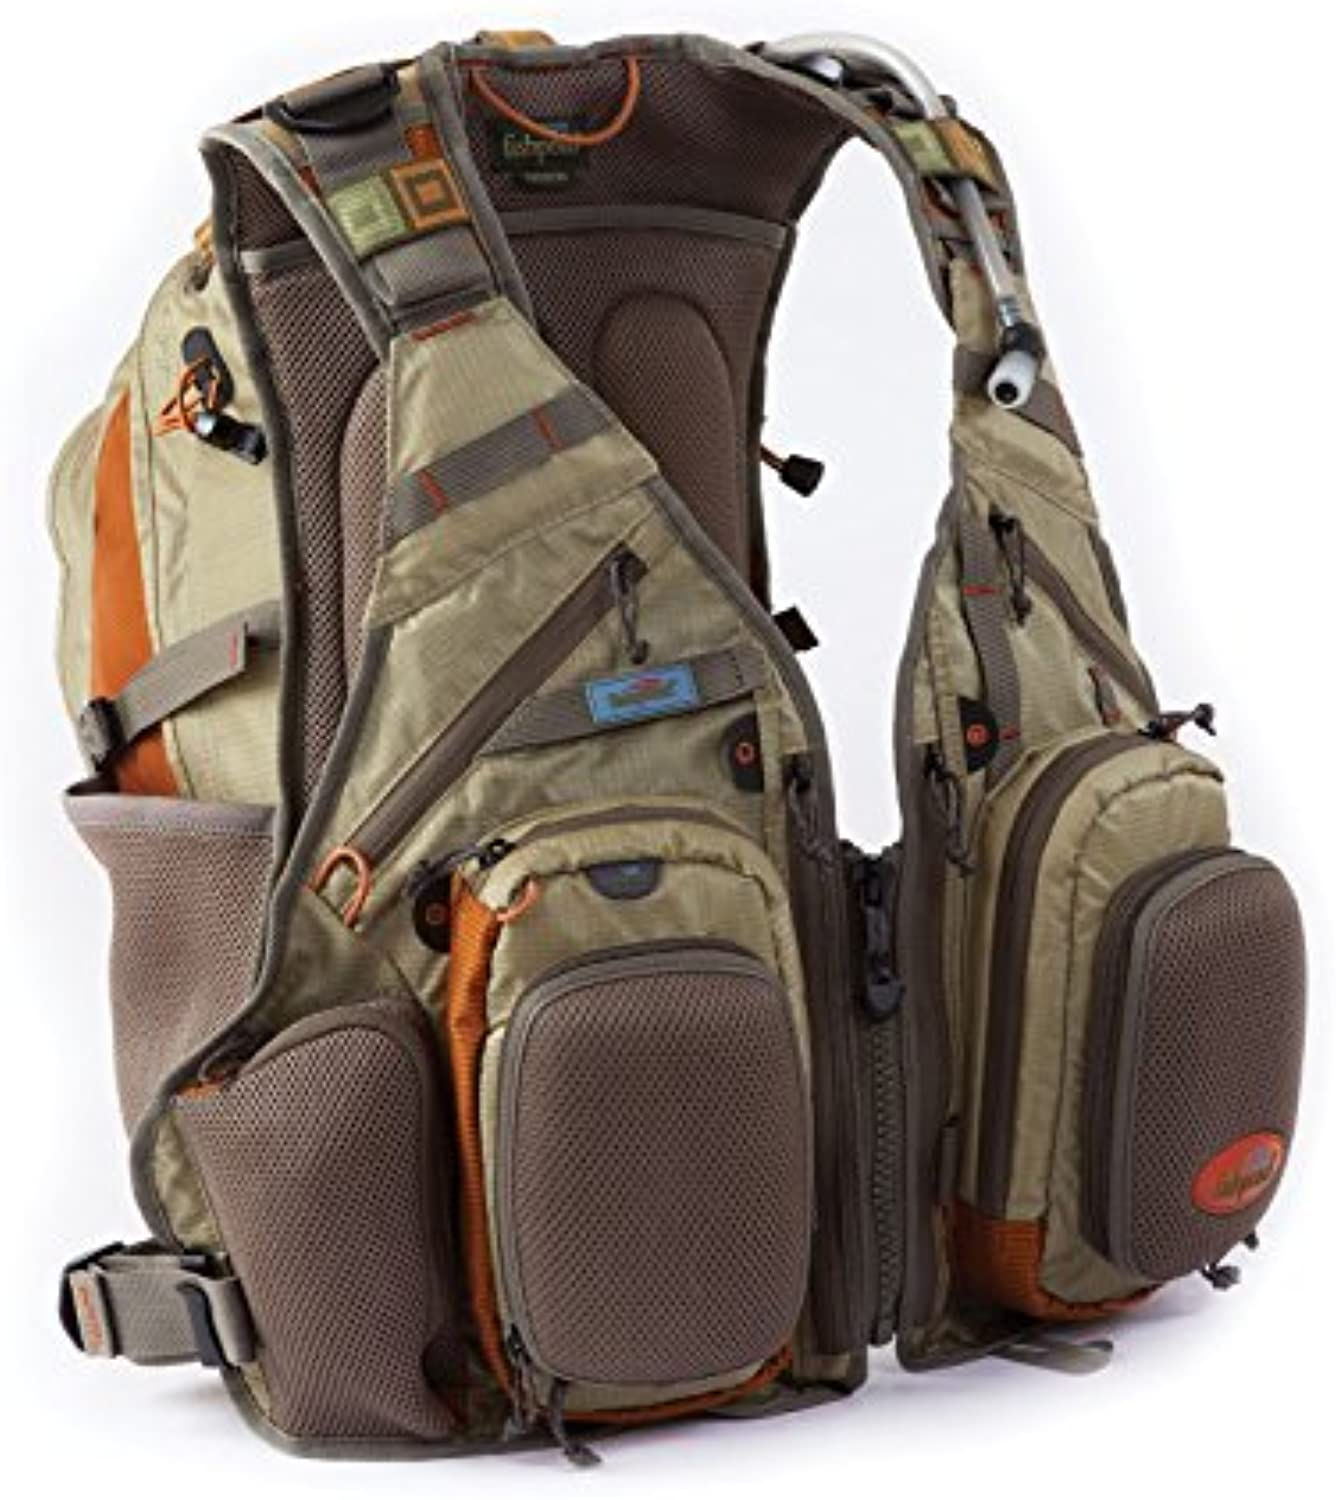 Fishpond Wildhorse Tech Pack Driftwood, One Size by FishPond